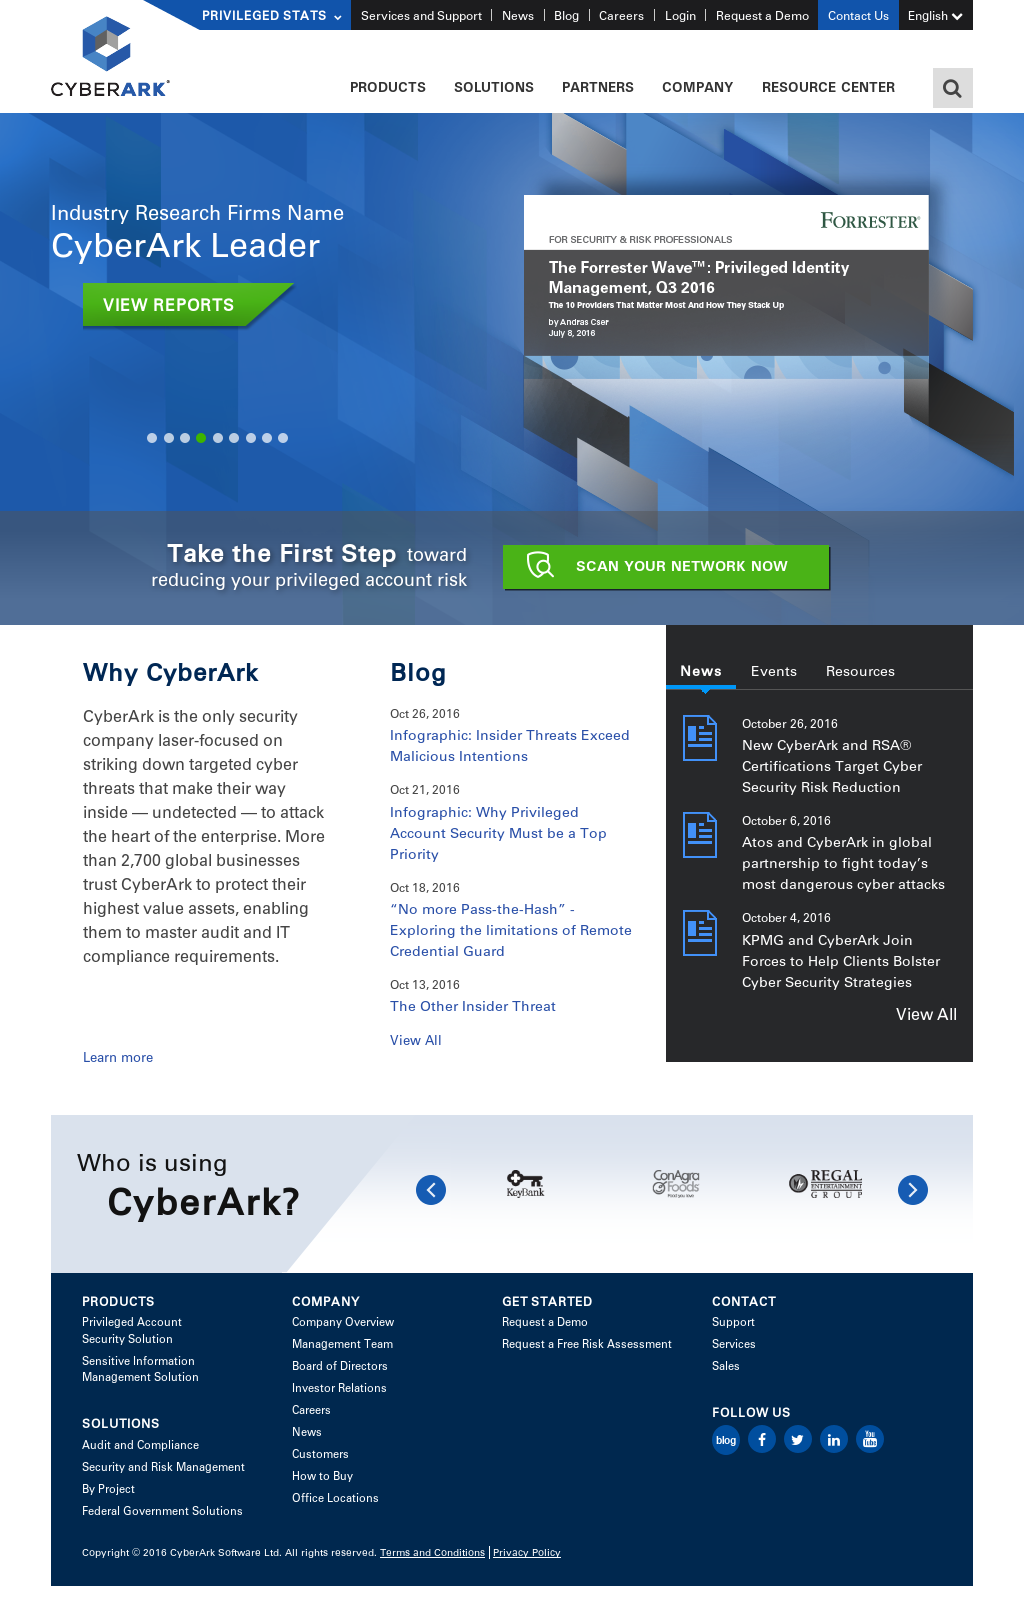 CyberArk Software Competitors, Revenue and Employees - Owler